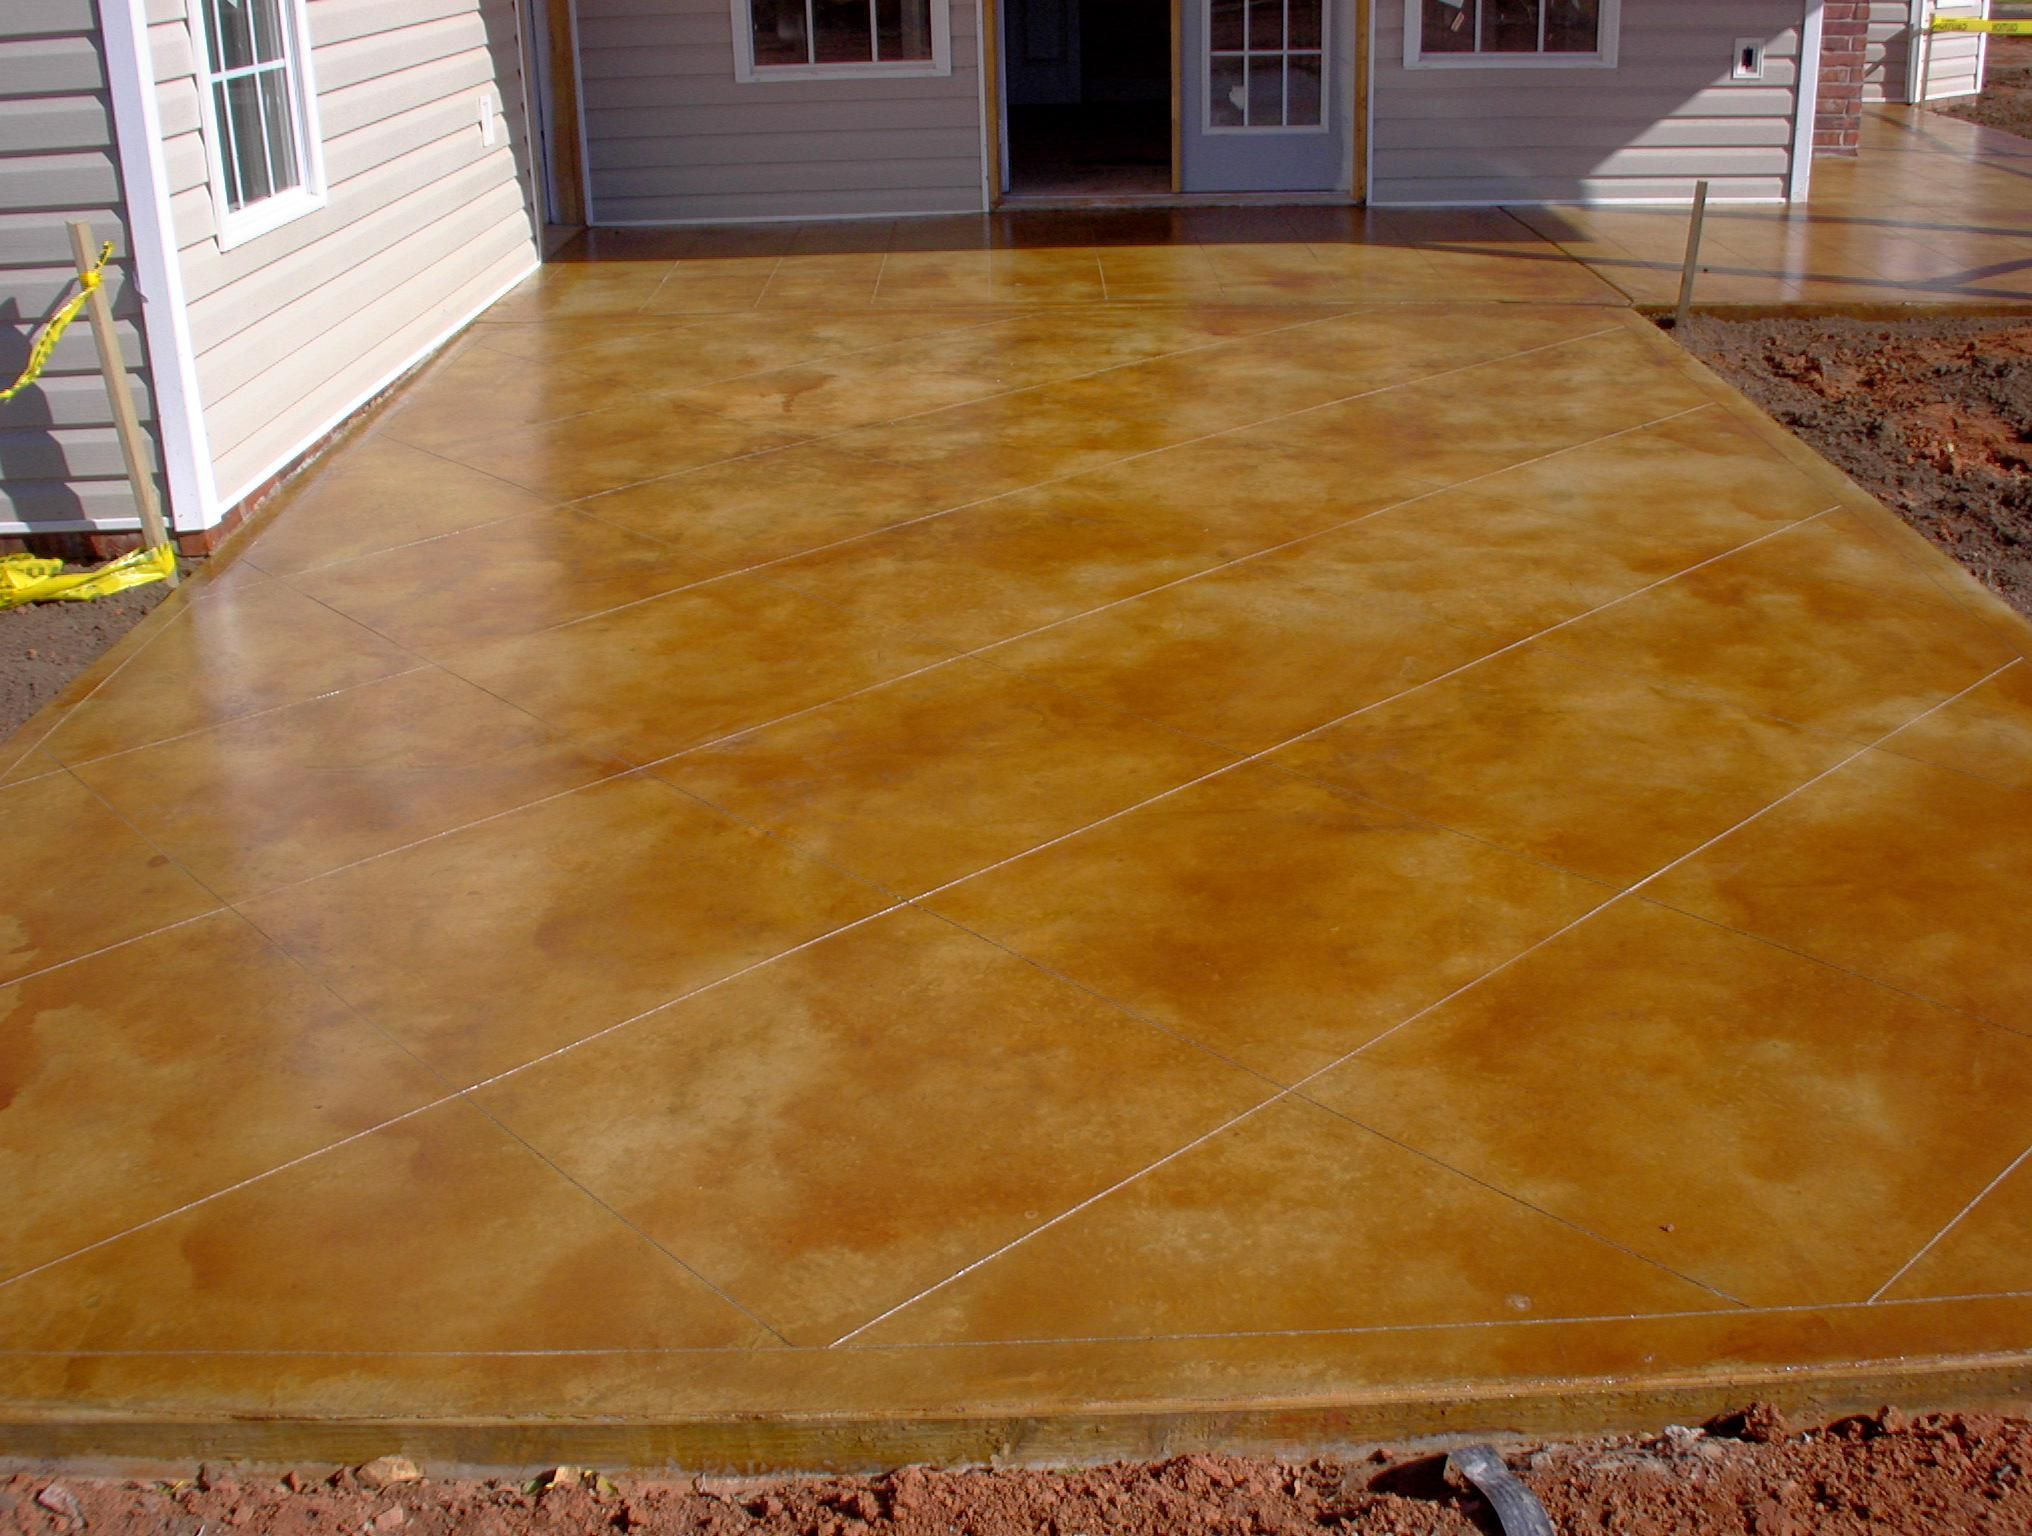 How To Paint Concrete Floors In House Stain Image Of Indoors ...